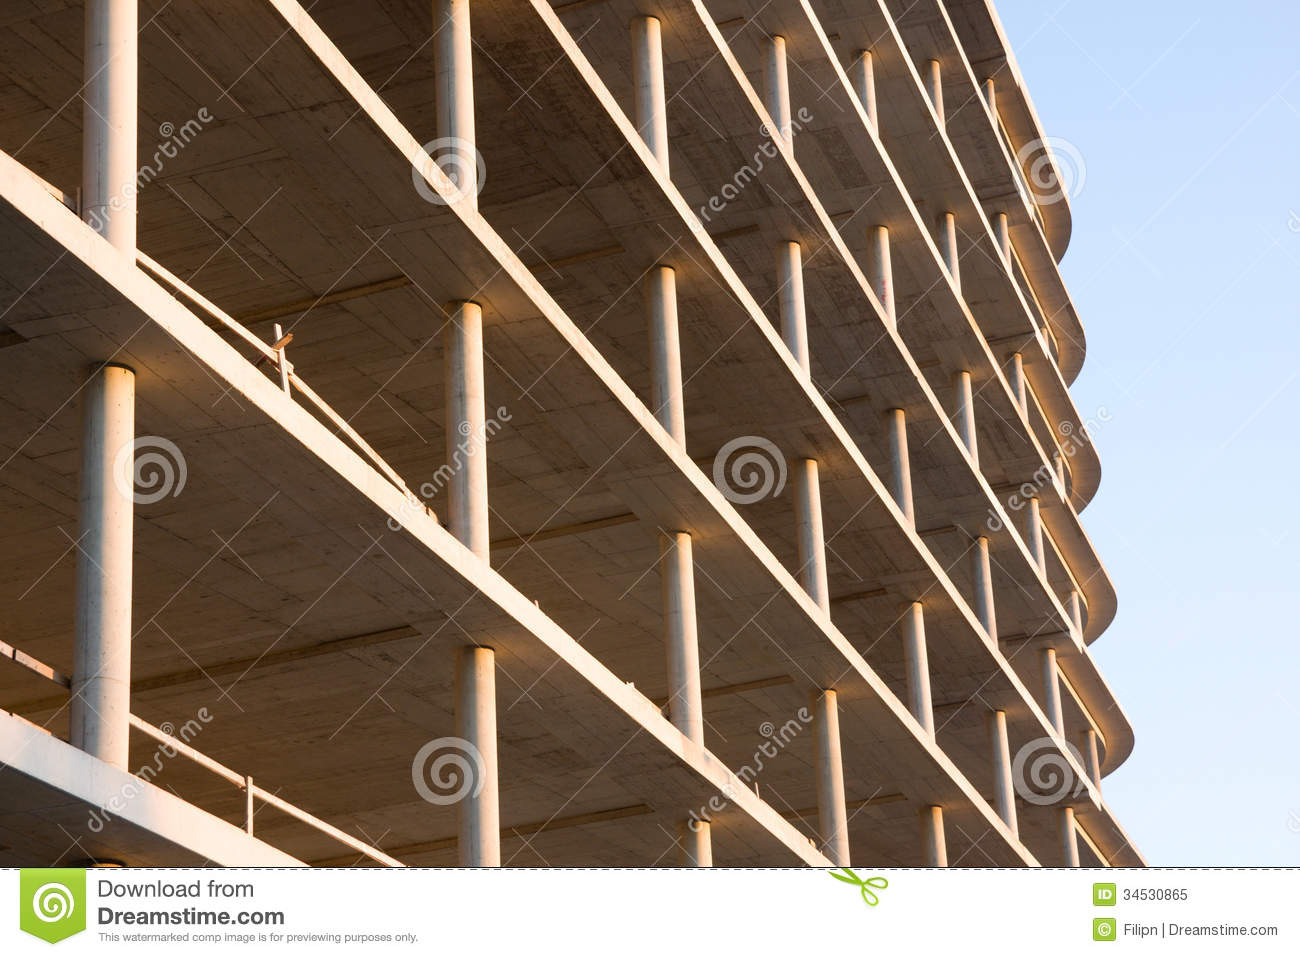 Monolithic reinforced concrete construction stock image for Structure photography